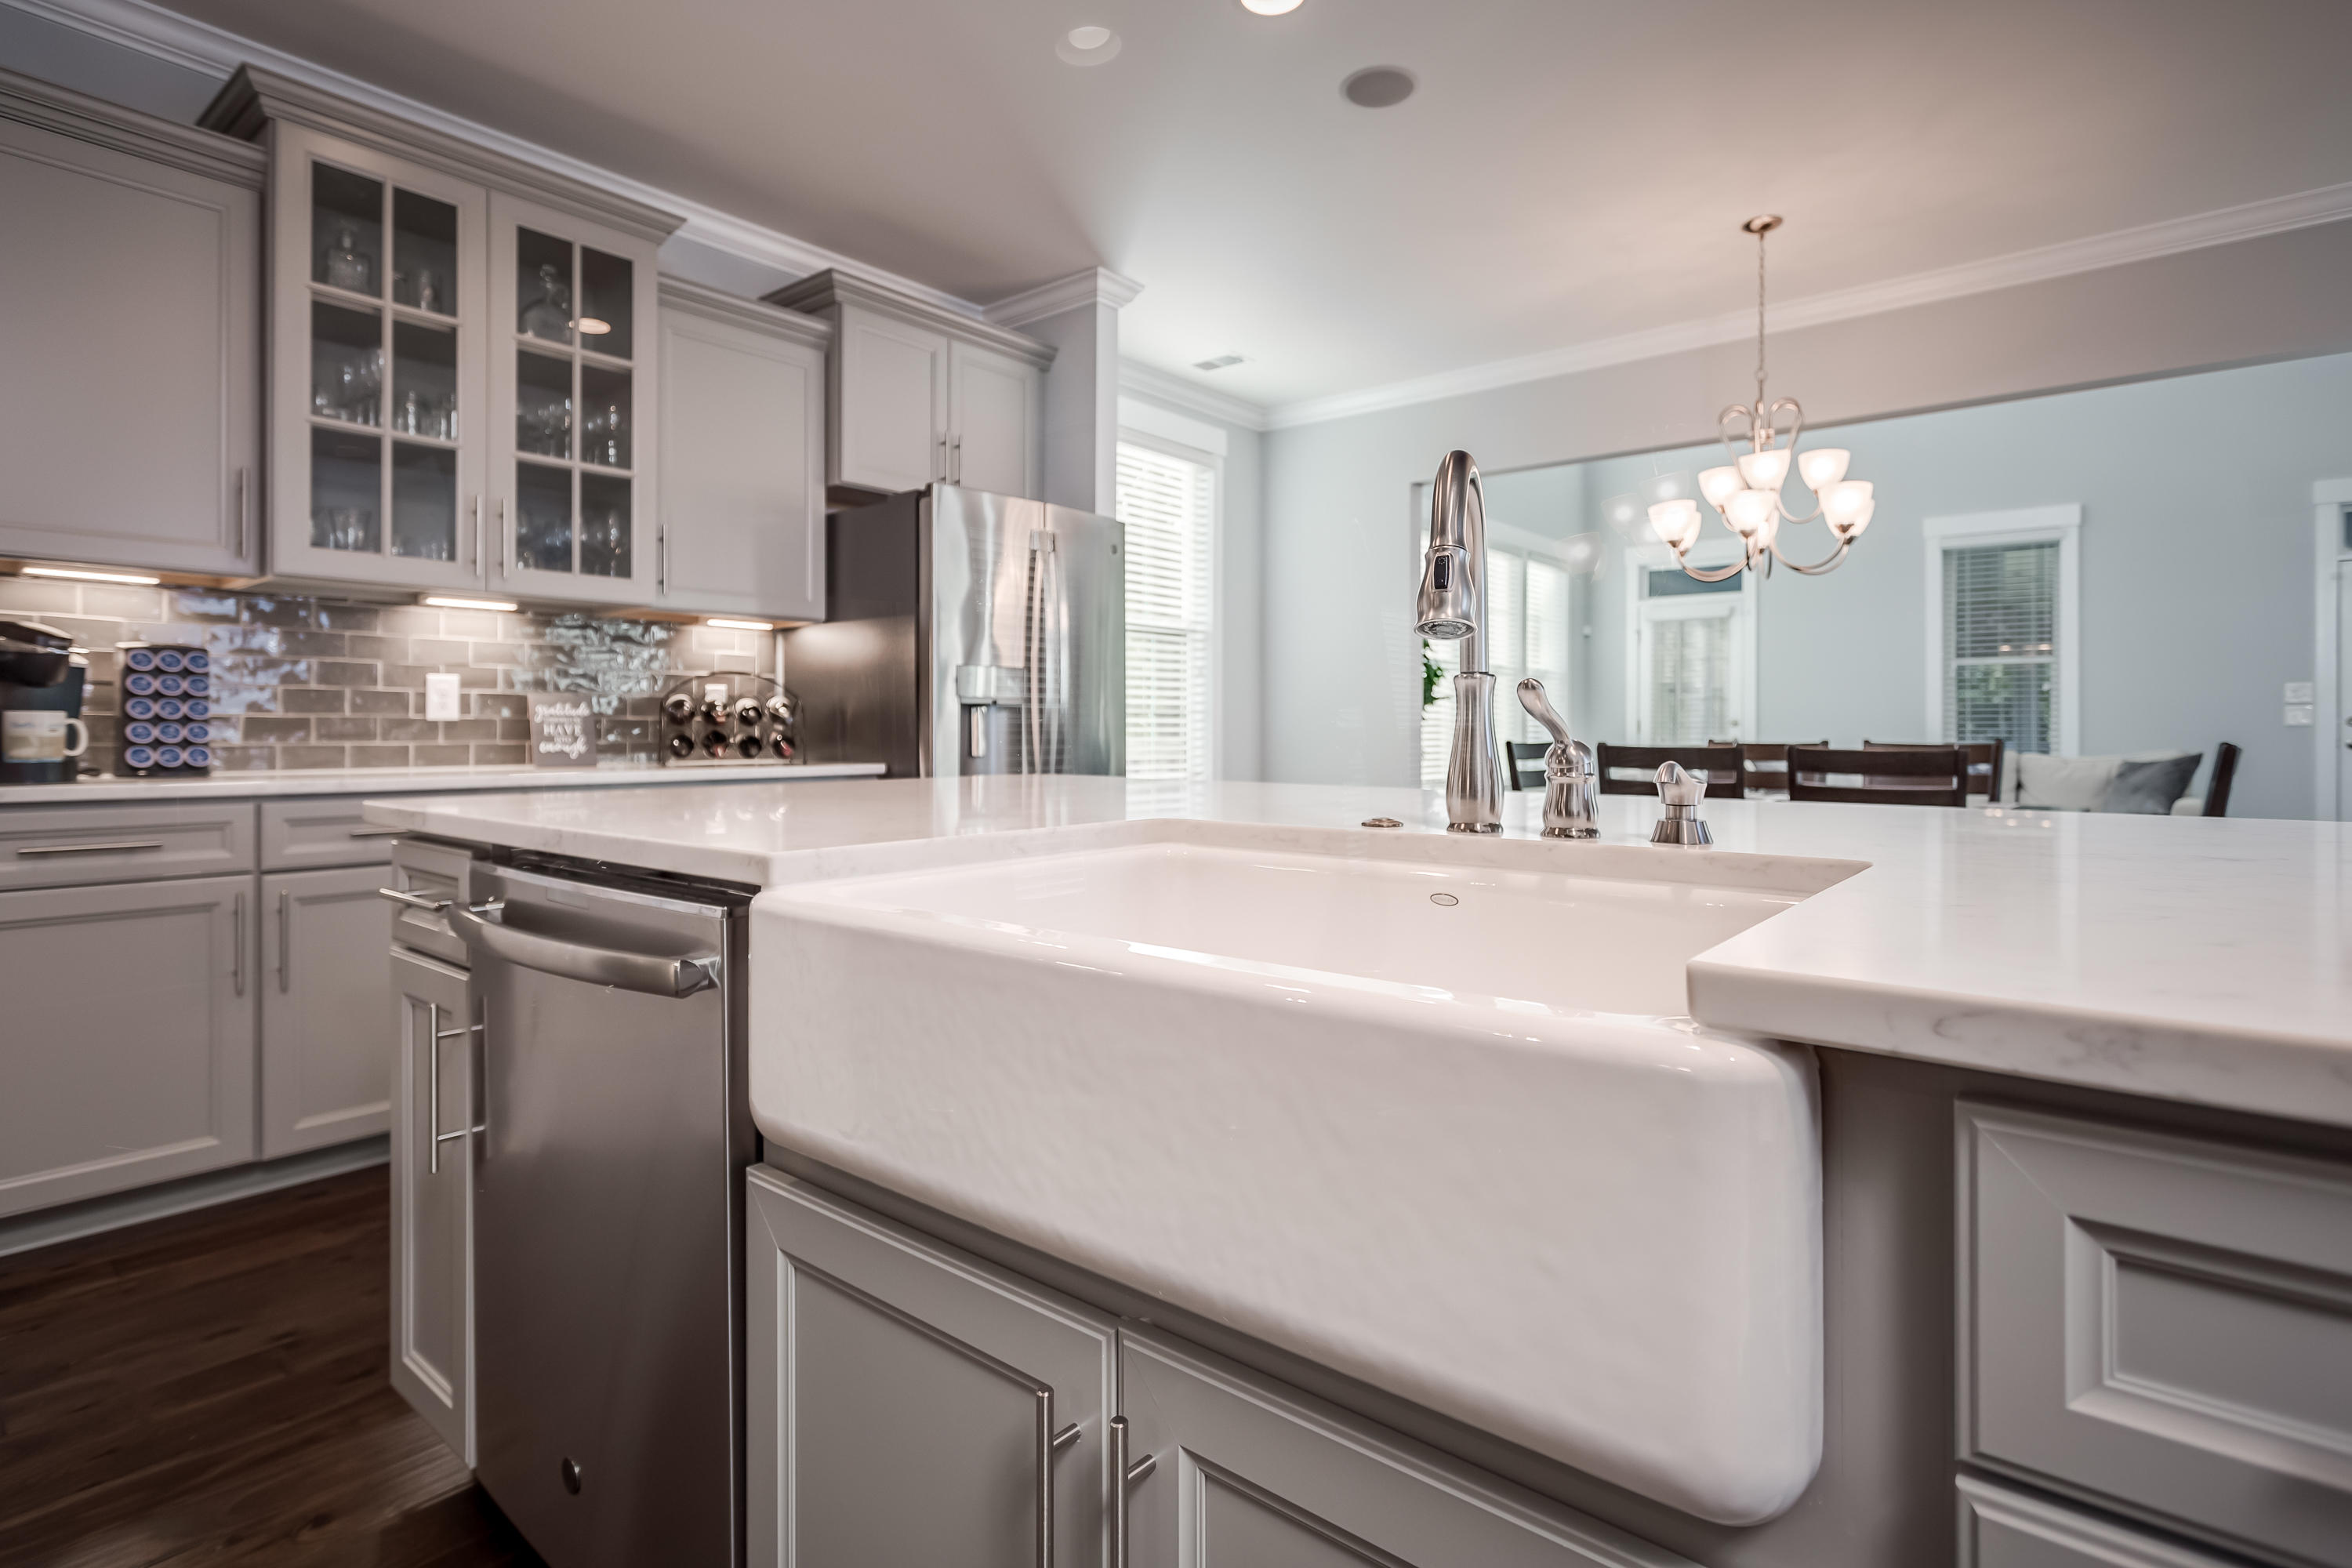 The Village at Stiles Point Homes For Sale - 849 Shutes Folly, Charleston, SC - 12